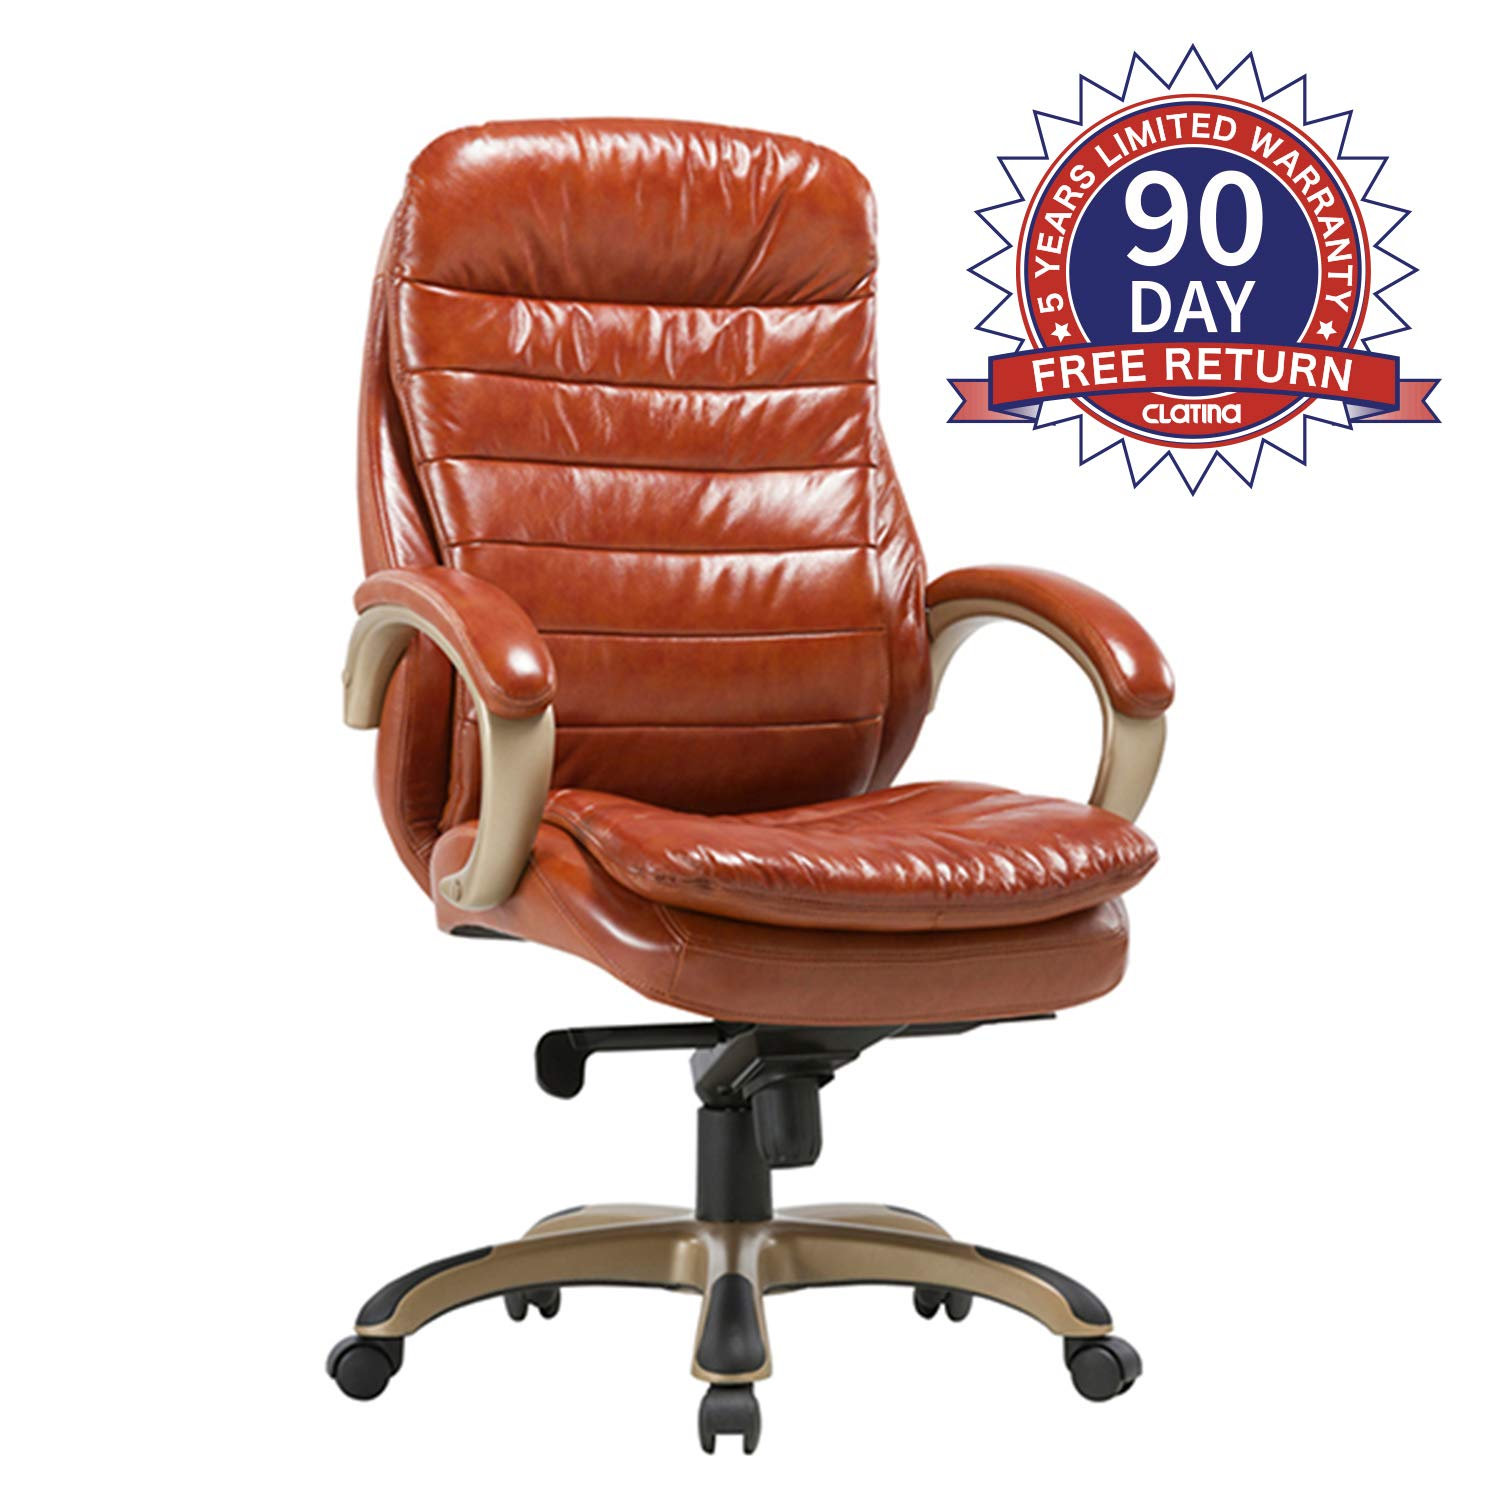 CLATINA Executive Bonded Leather Chair with Lean Forward High Back and Comfort Padding Ergonomic Seat for Managerial Office Home Orange New